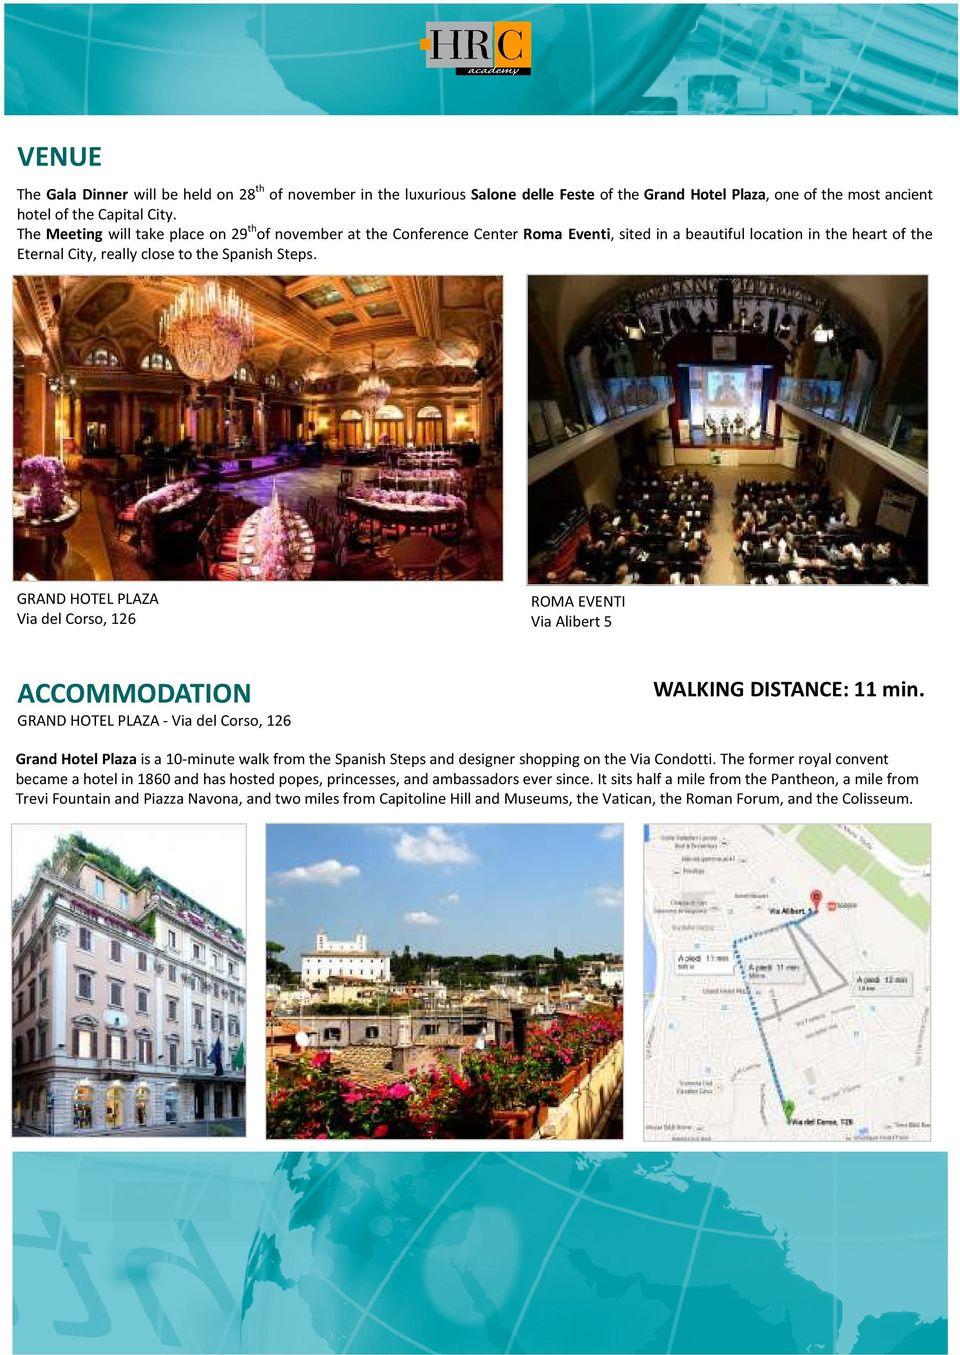 GRAND HOTEL PLAZA Via del Corso, 126 ACCOMMODATION ROMA EVENTI Via Alibert 5 WALKING DISTANCE: 11 min.